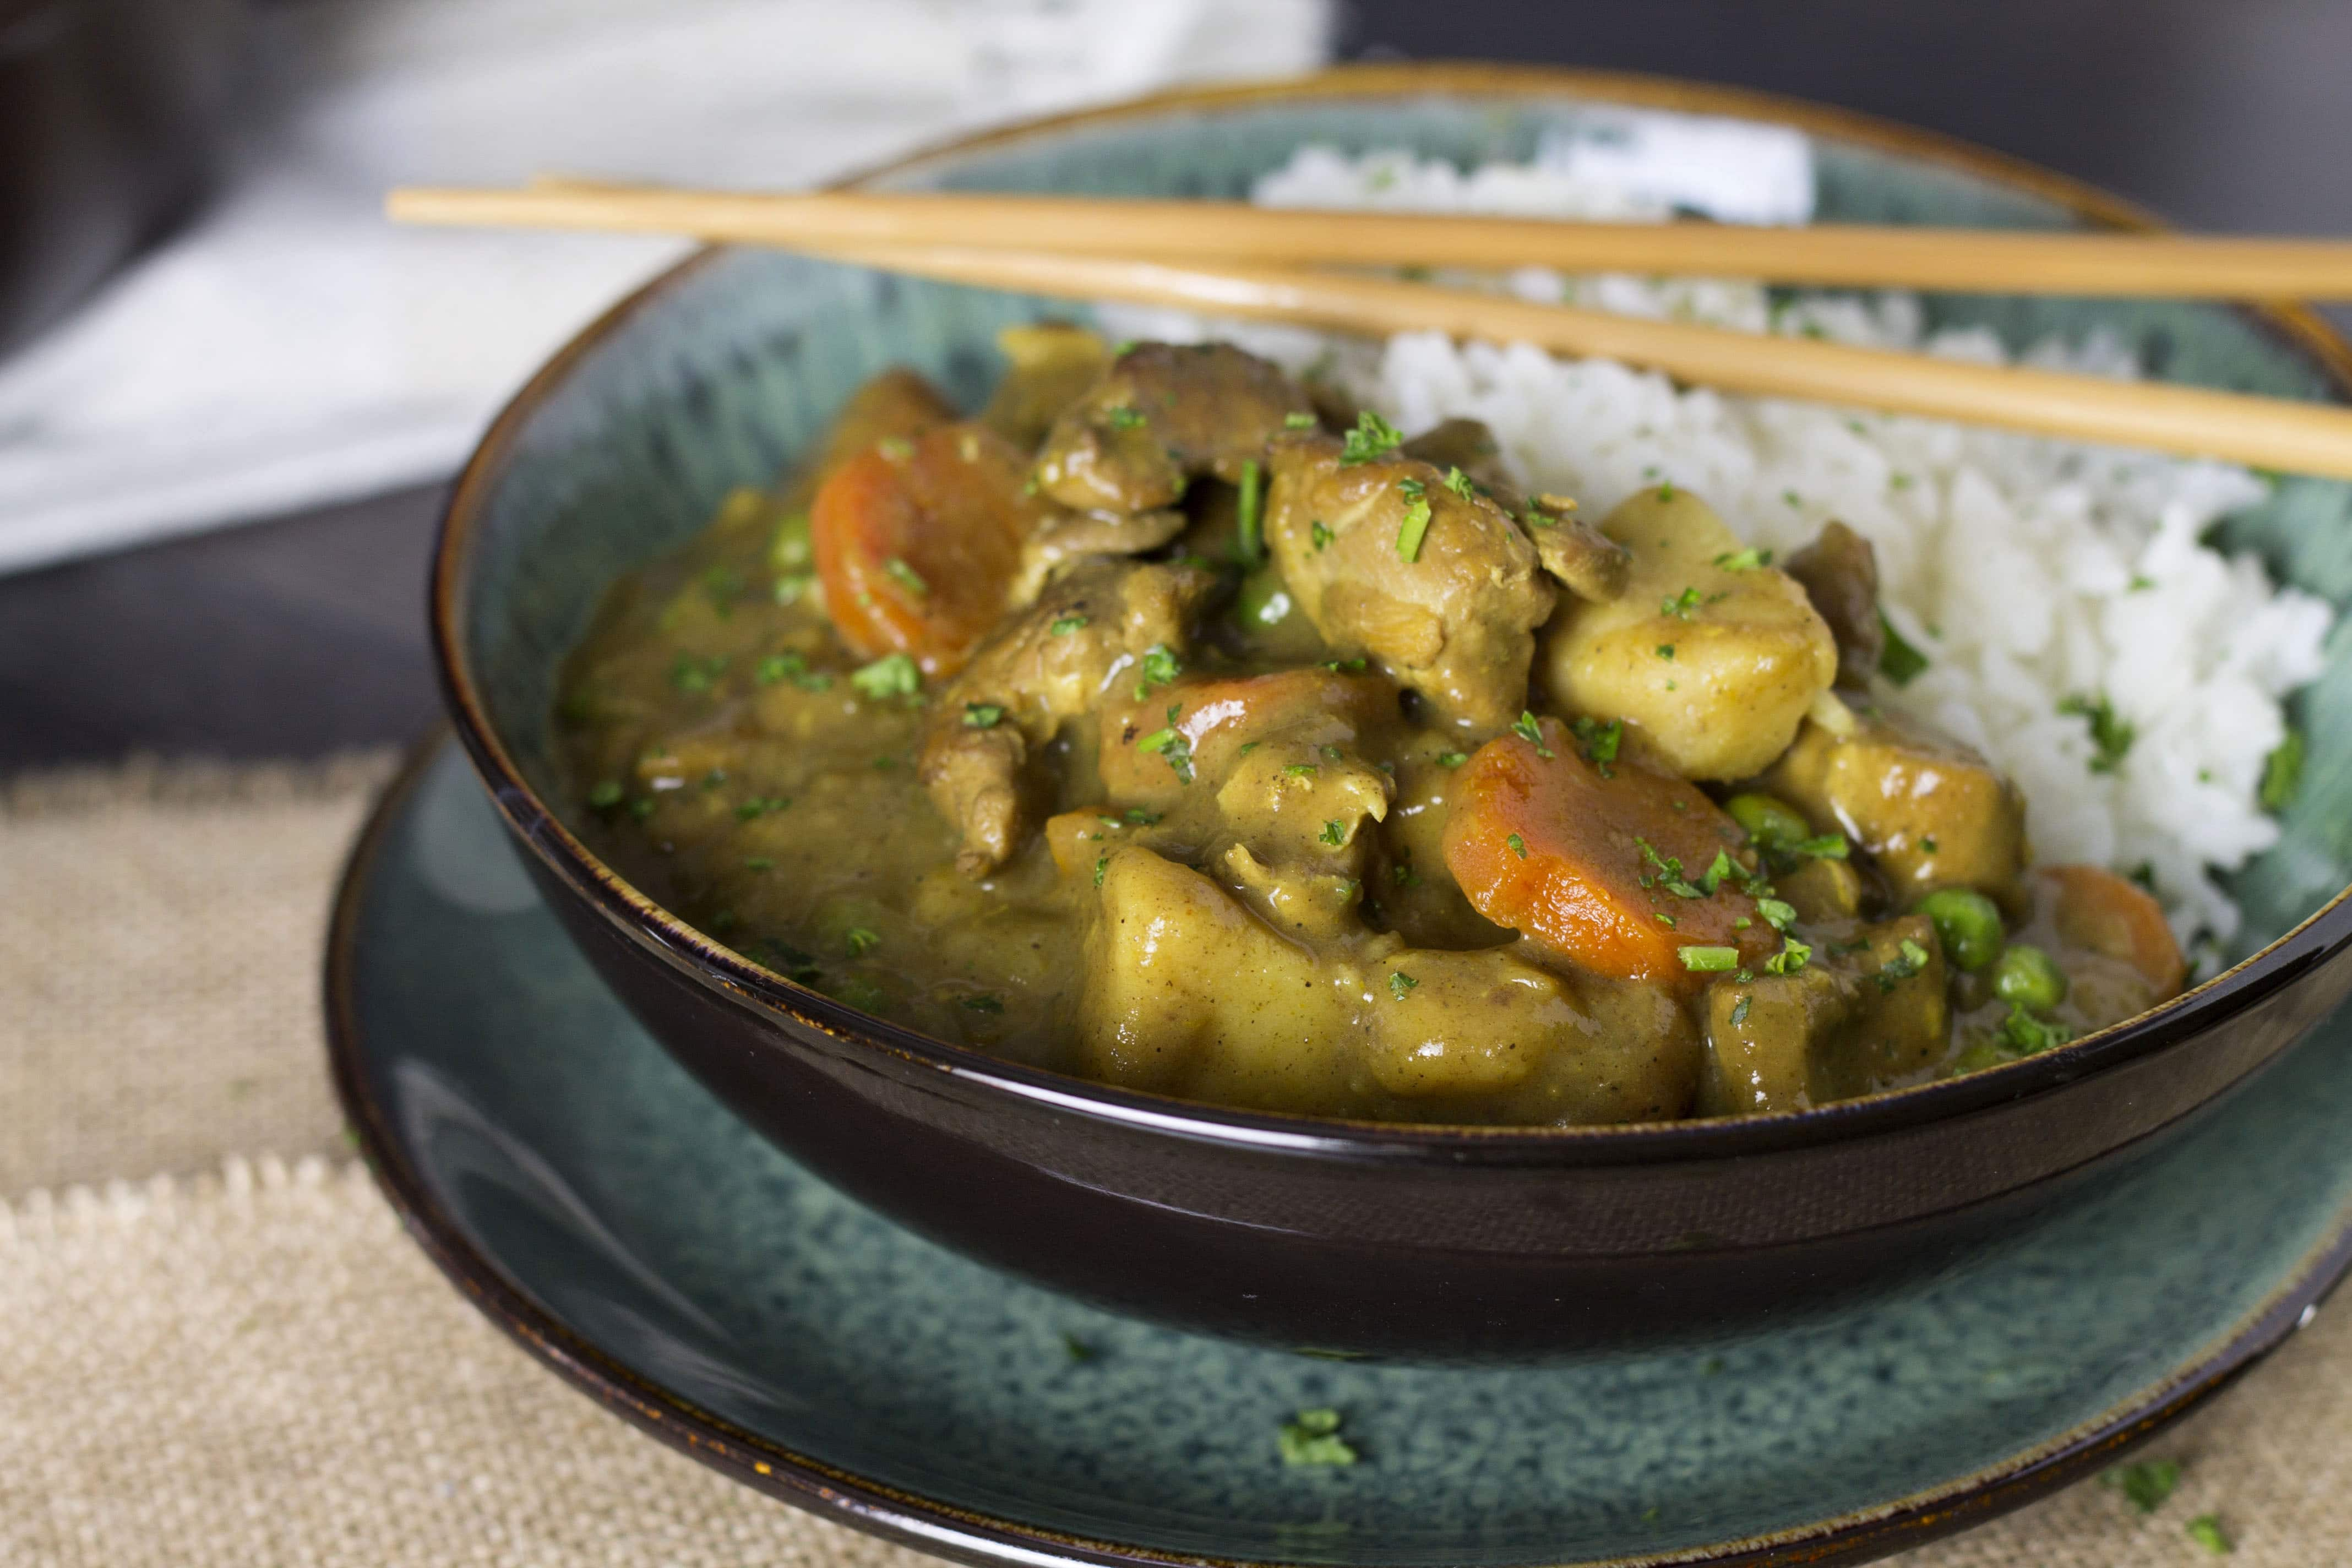 Japanese chicken curry errens kitchen this recipe for japanese chicken curry is a healthier take on fried chicken katsu curry forumfinder Choice Image